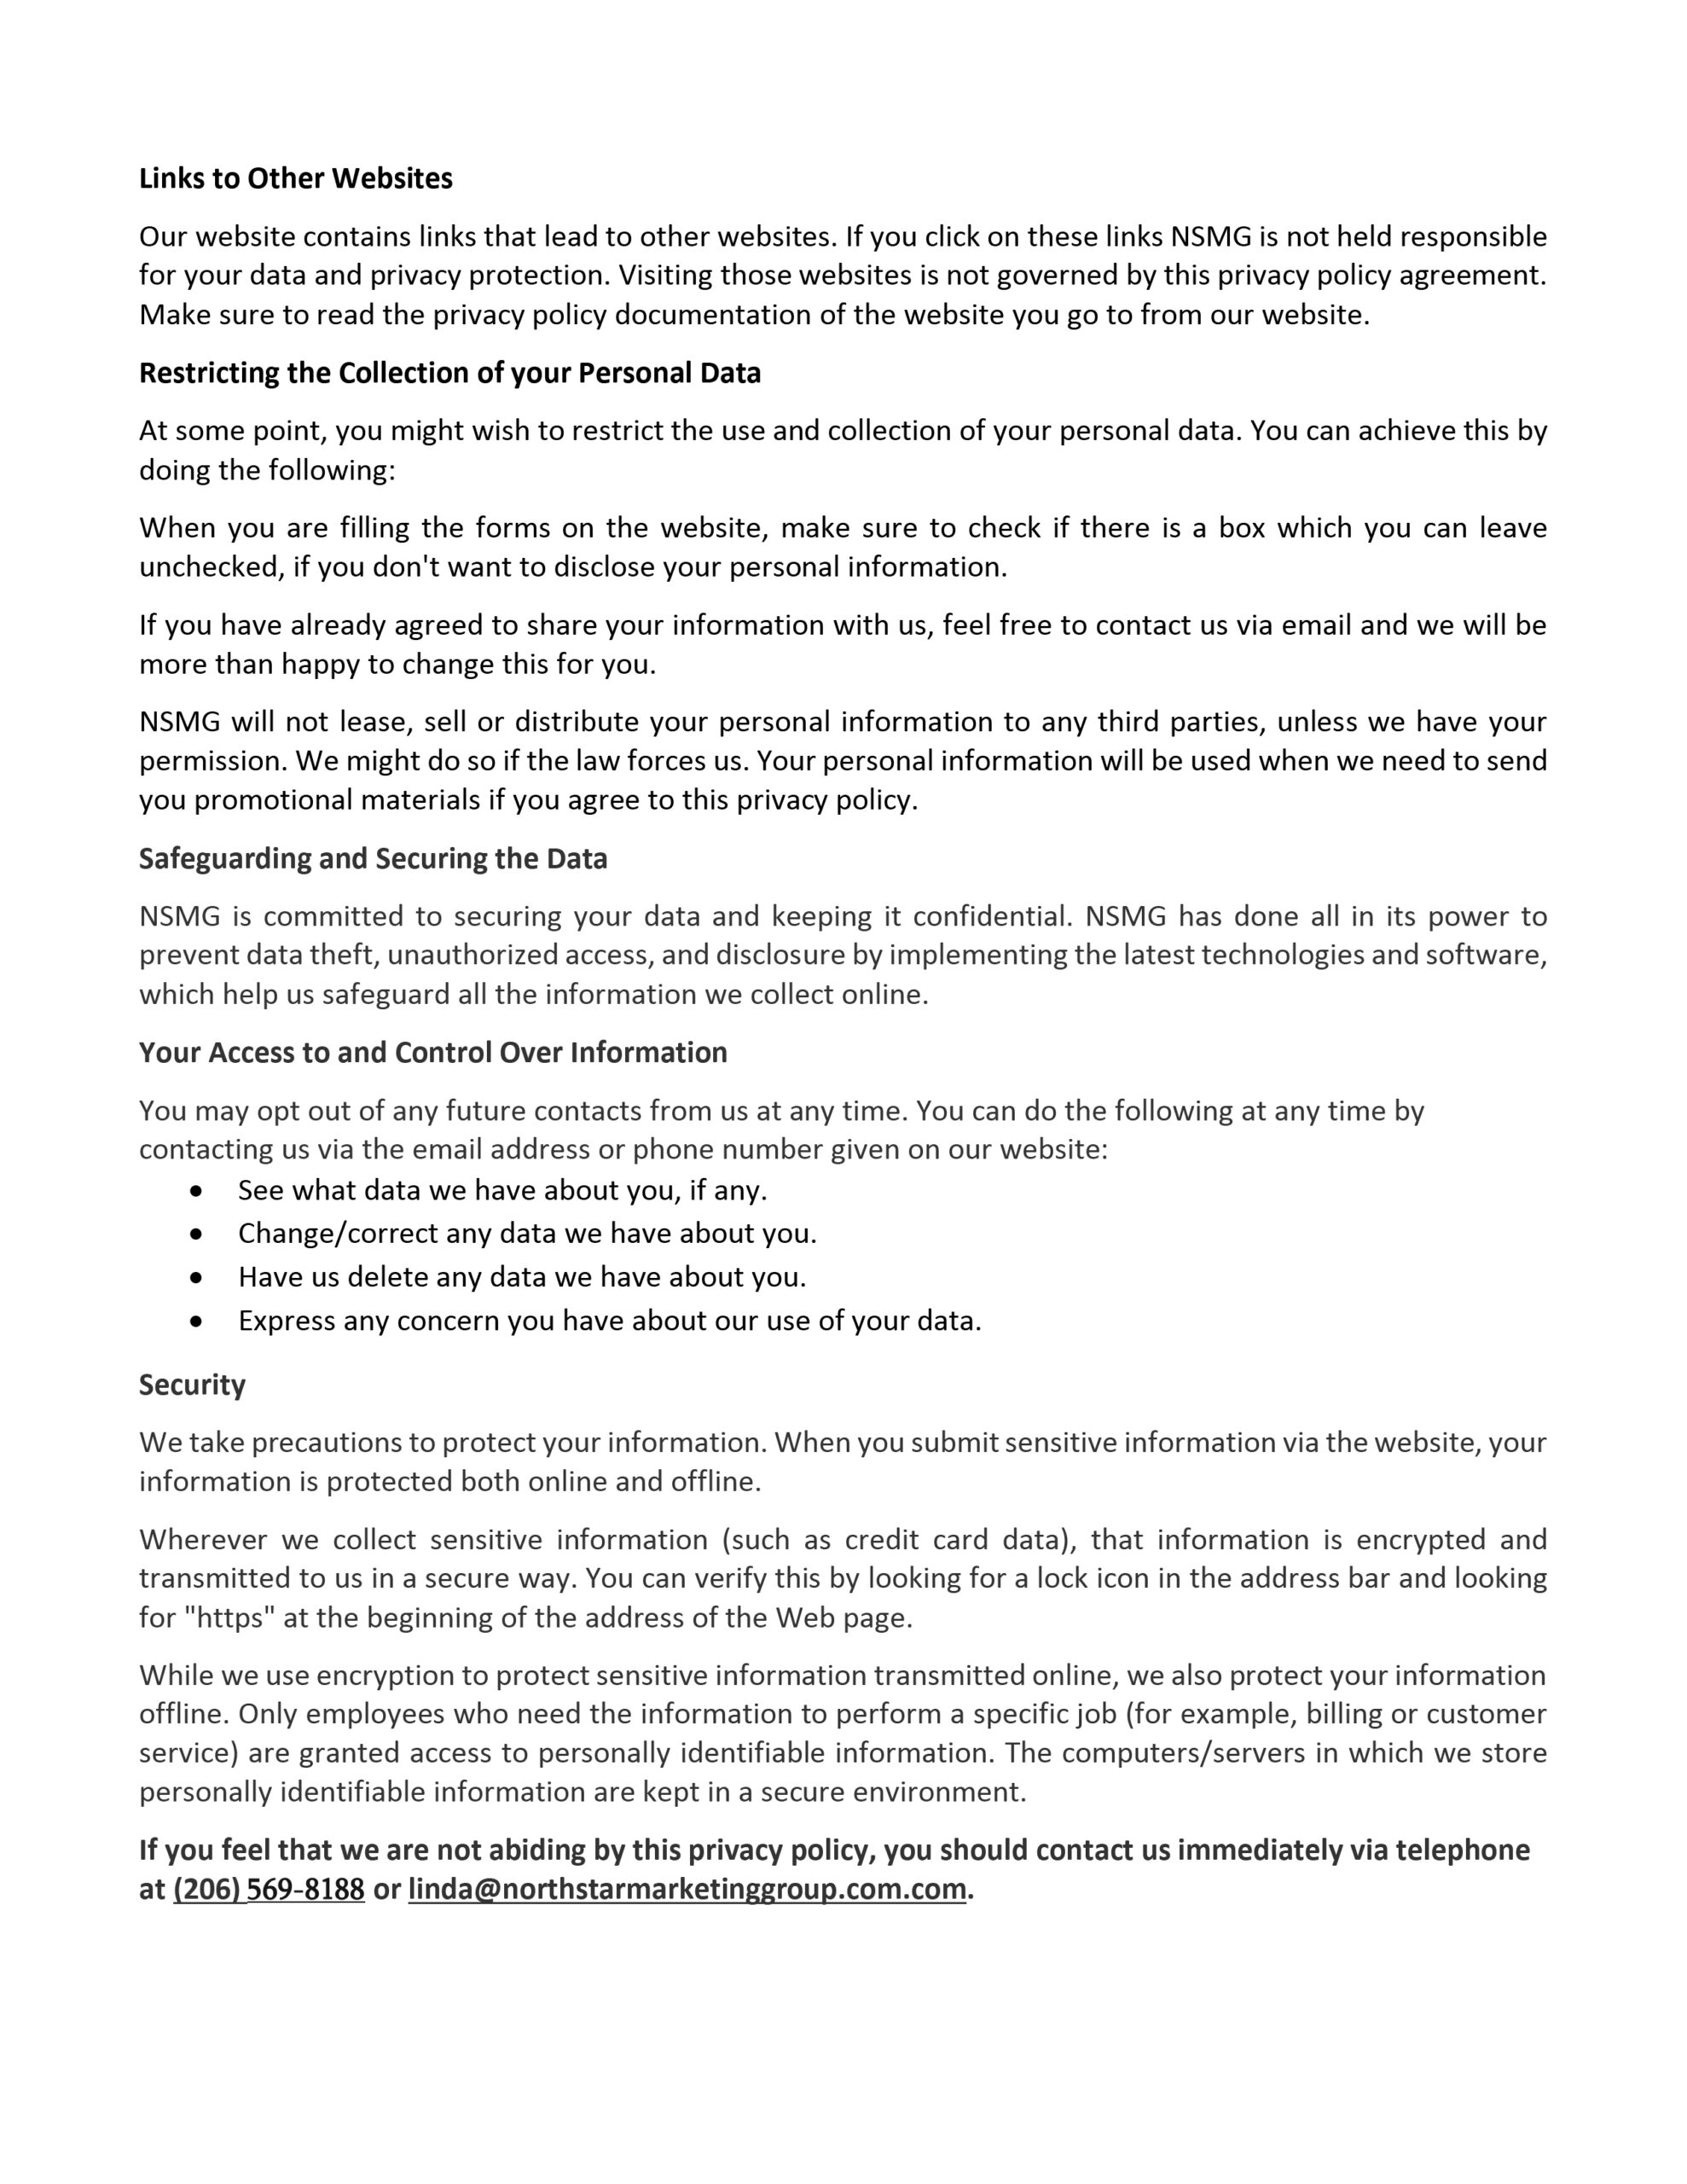 NSMG Privacy Policy page 2